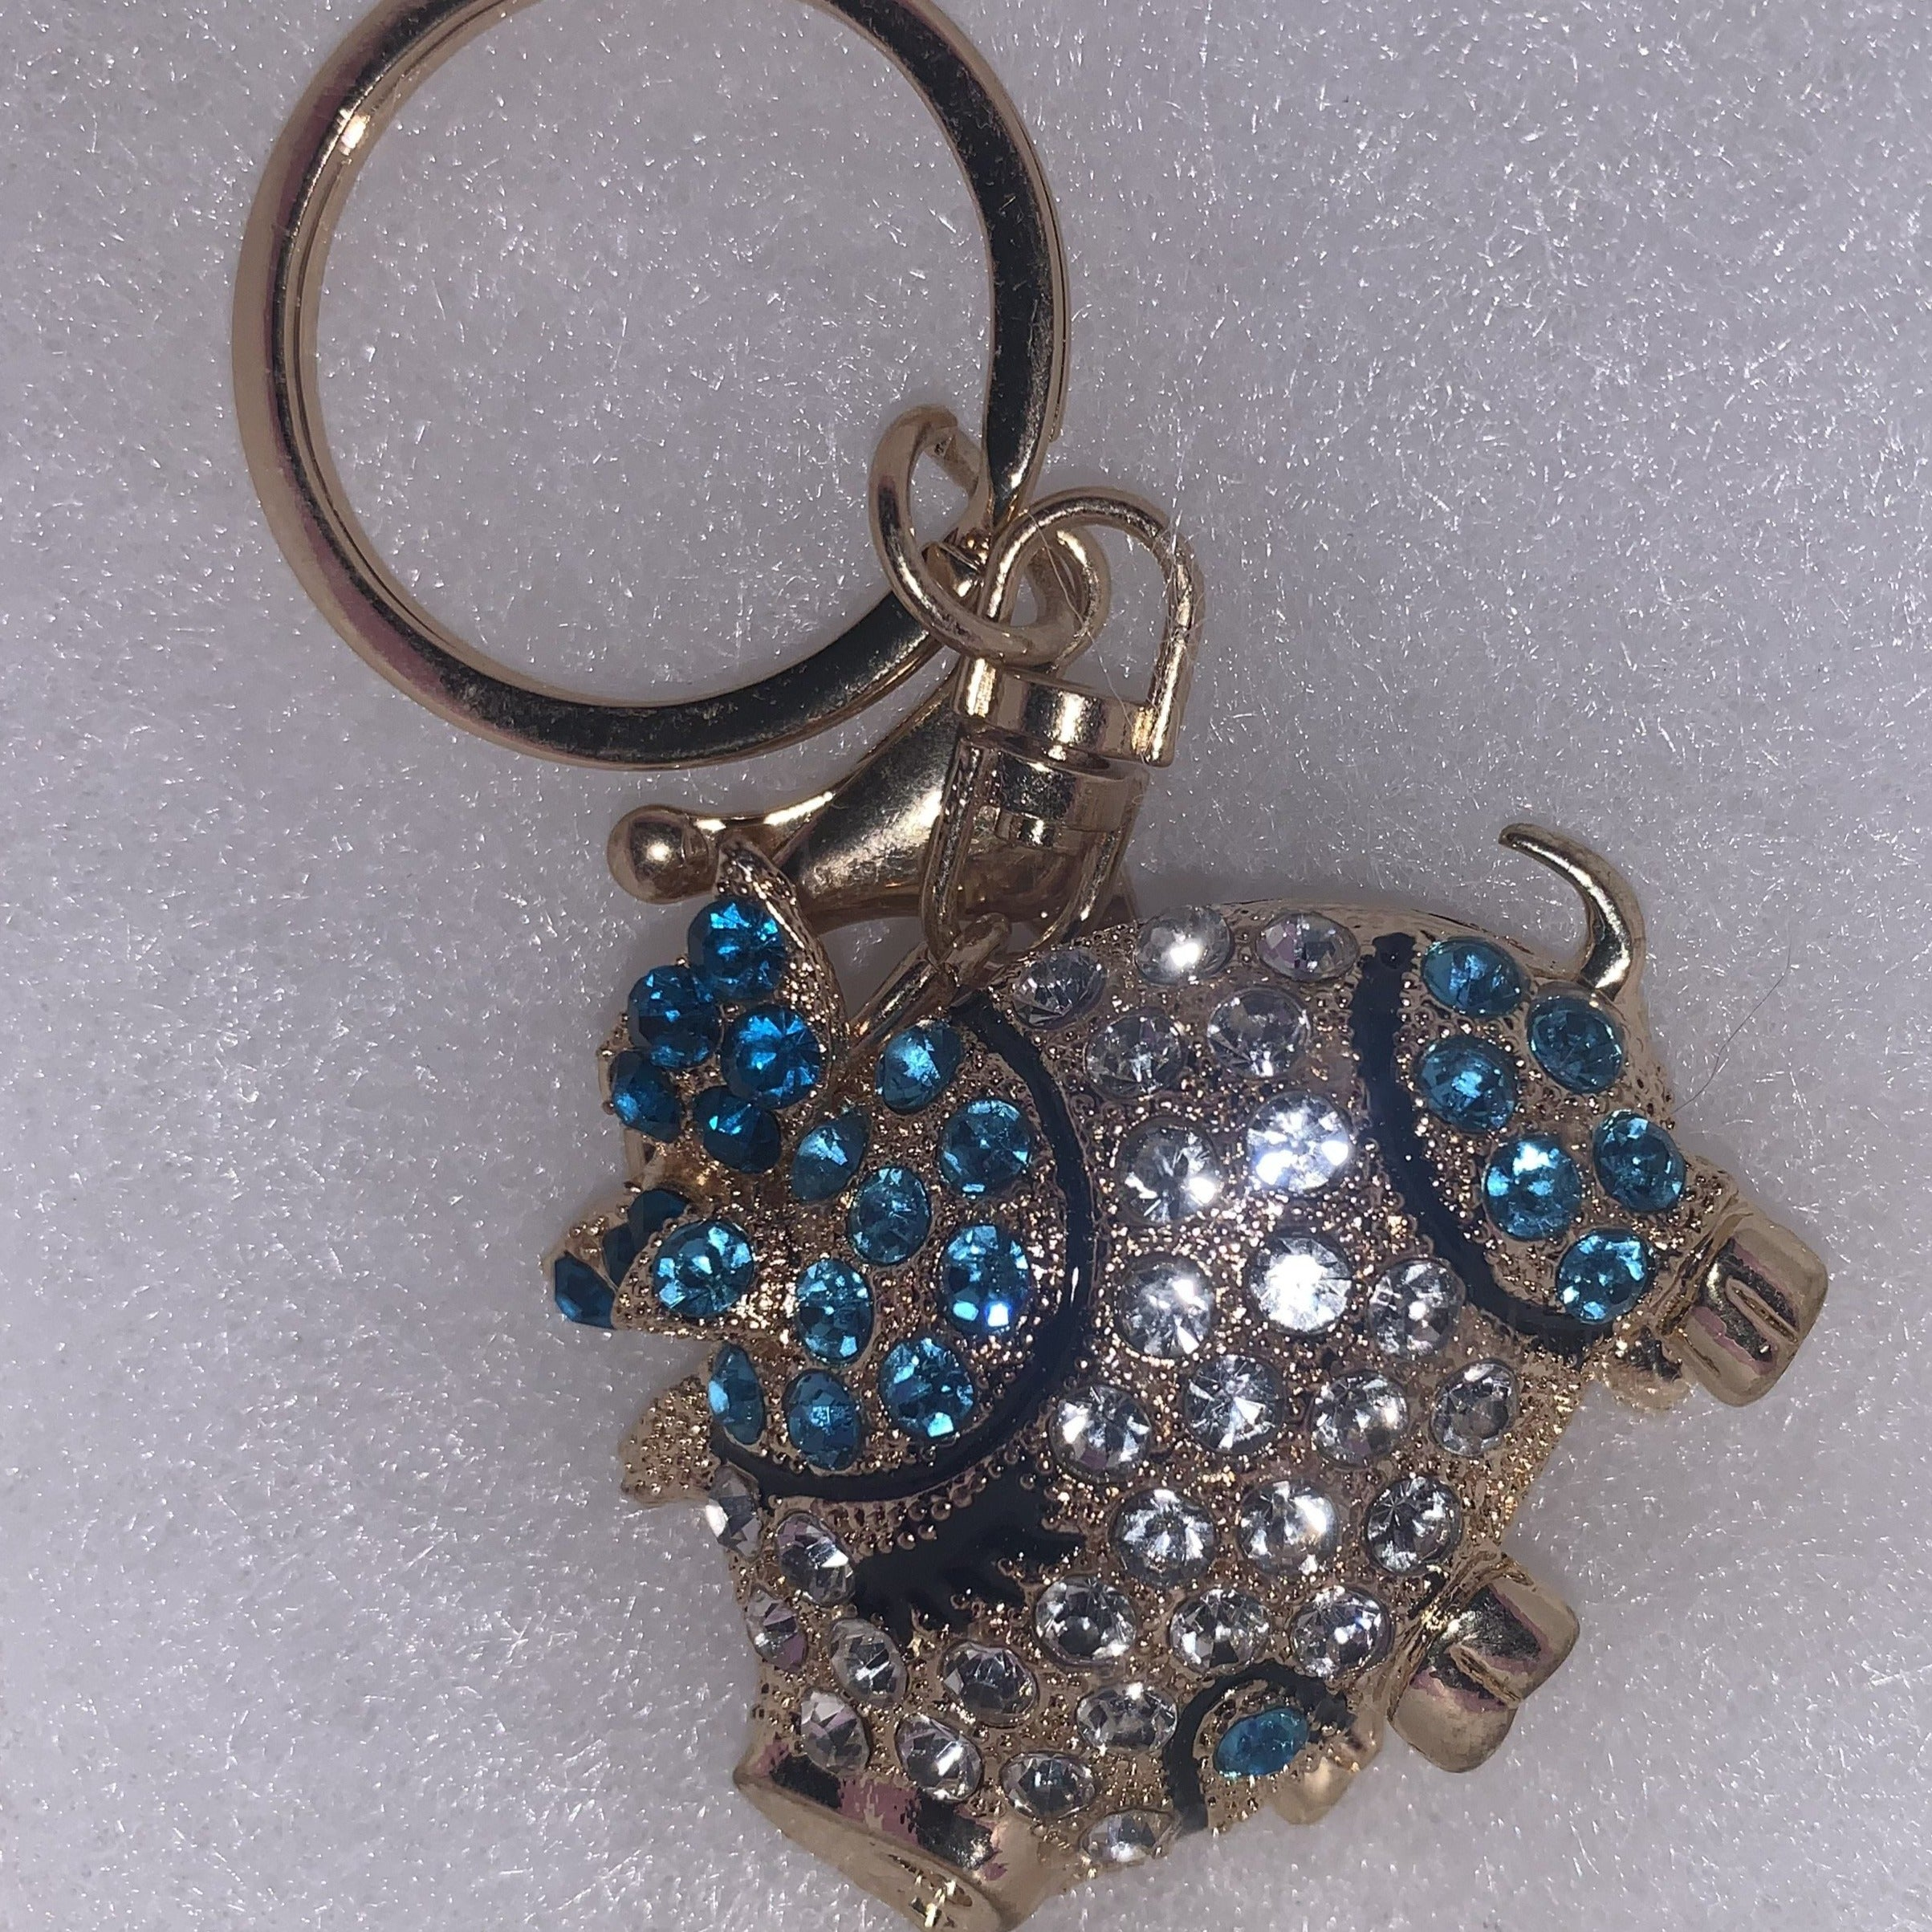 Assorted Blinging Keychains